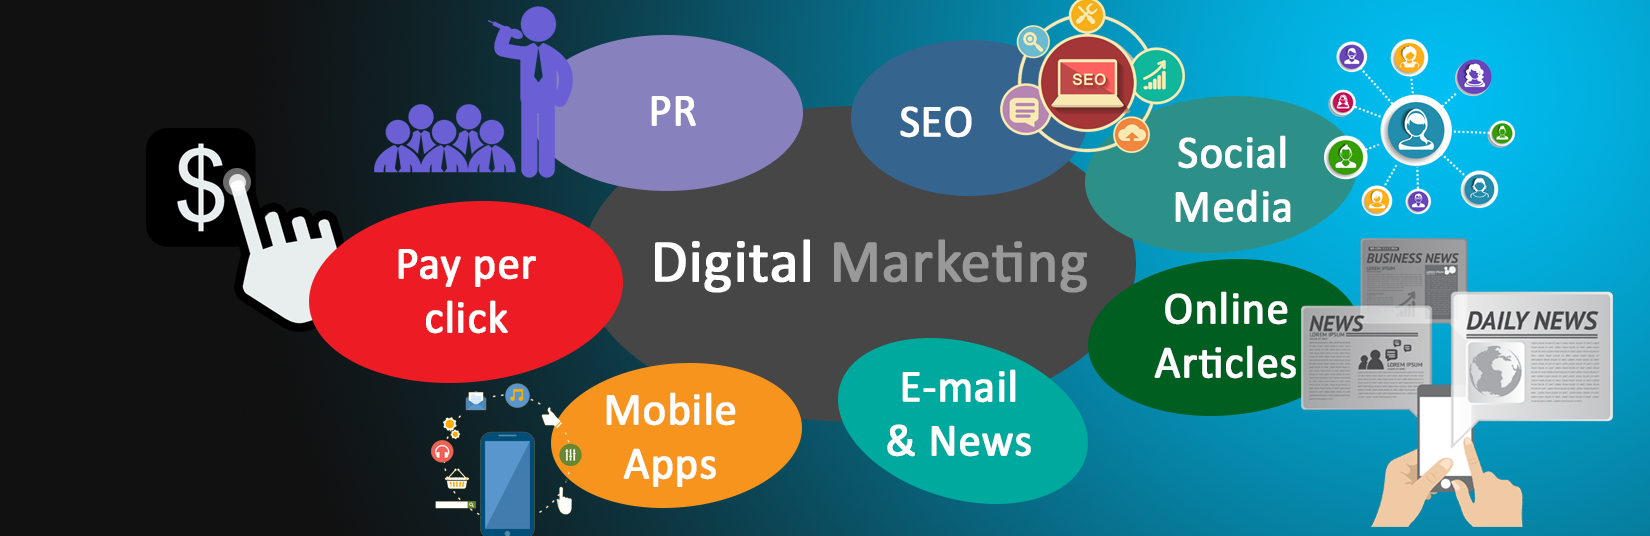 Top 10 Services Offered By Digital Marketing Companies In